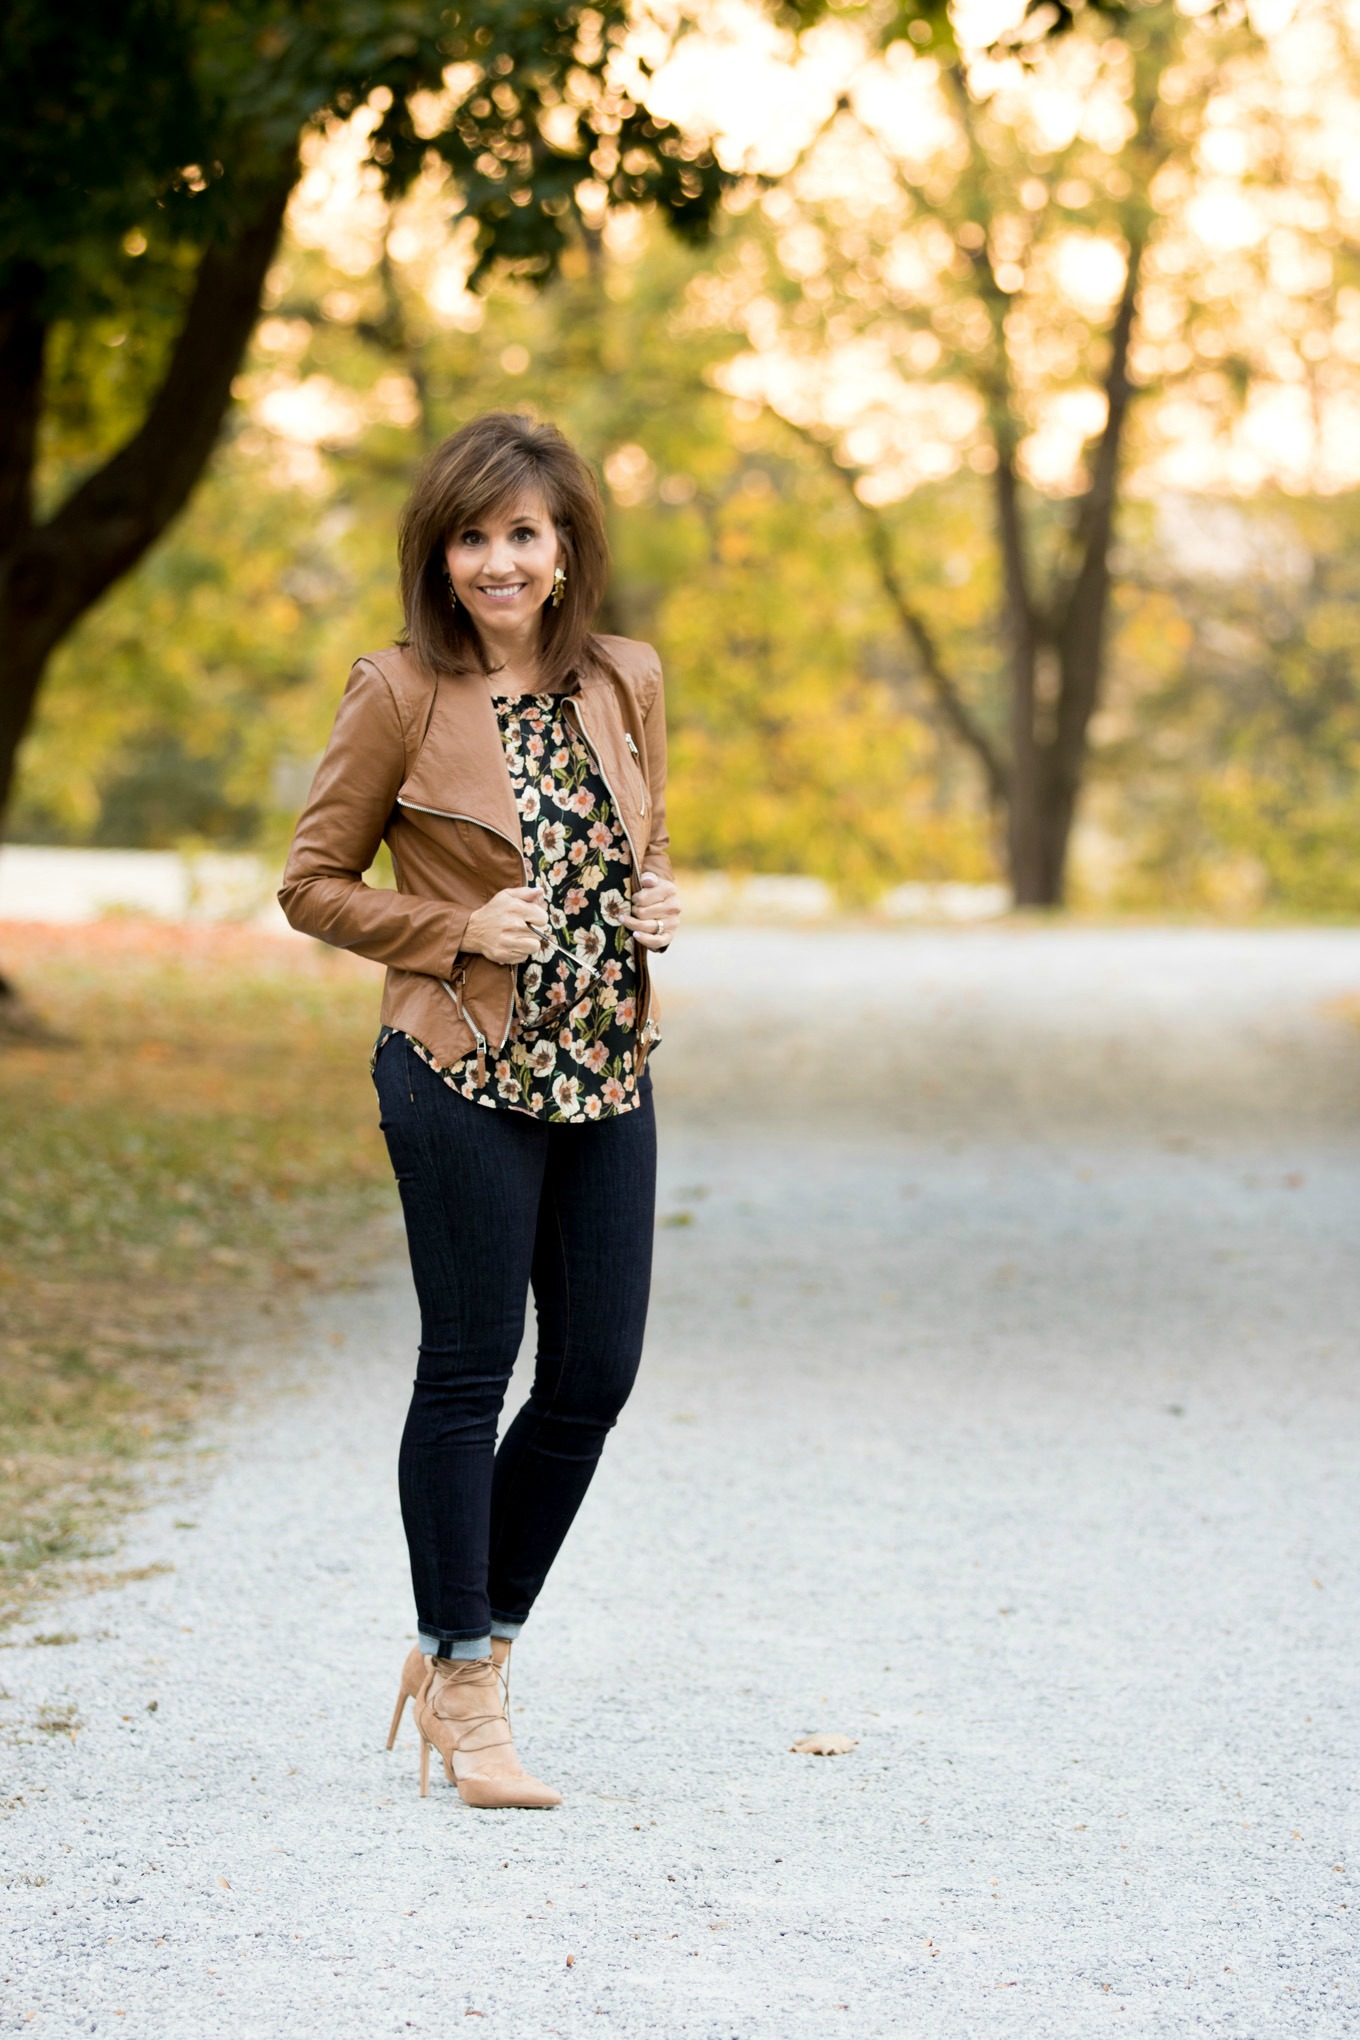 Fashion blogger, Cyndi Spivey, shares the floral and lace up trend from Nordstrom.